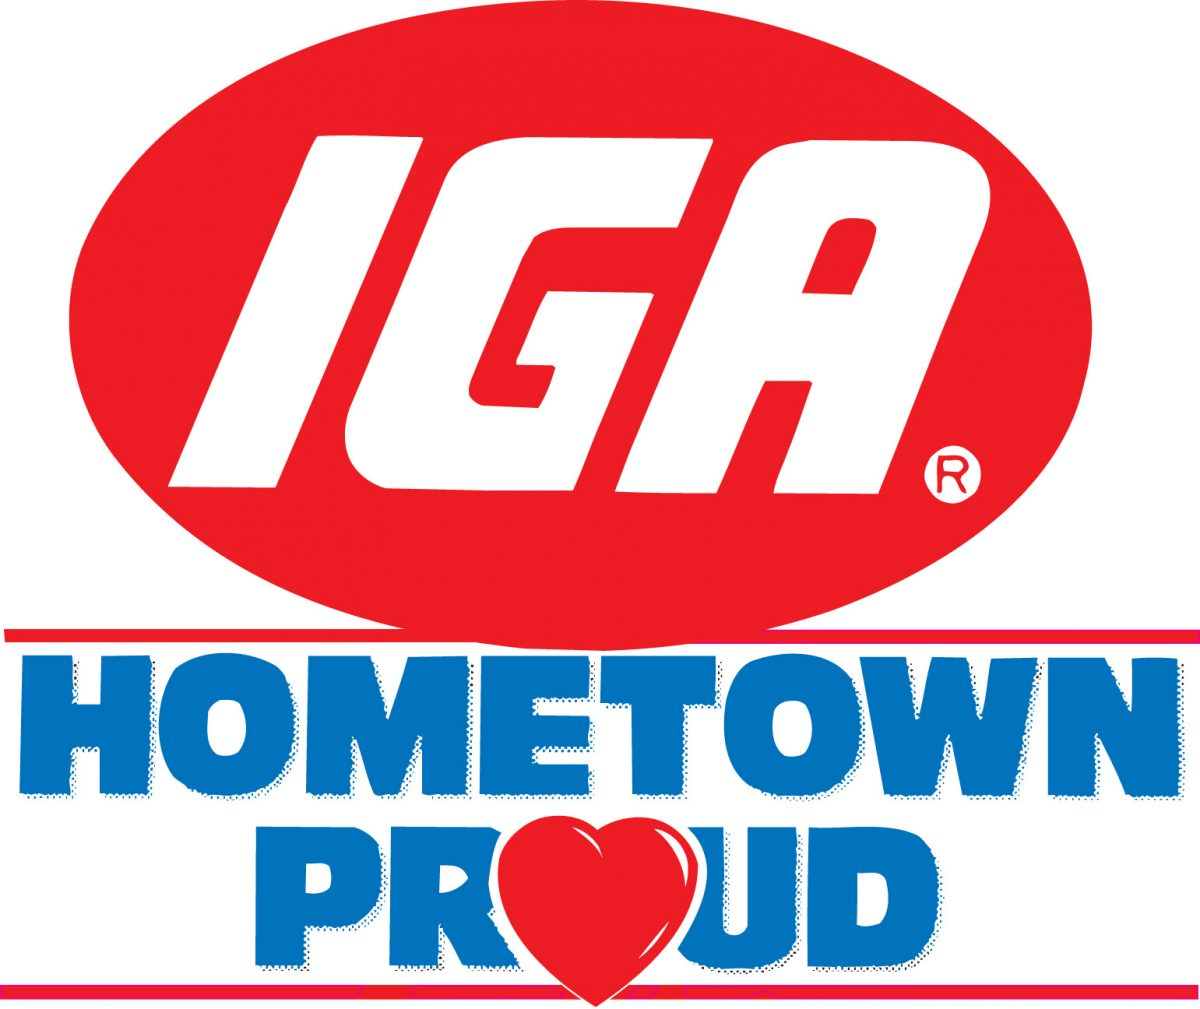 IGA's Hometown Proud logo